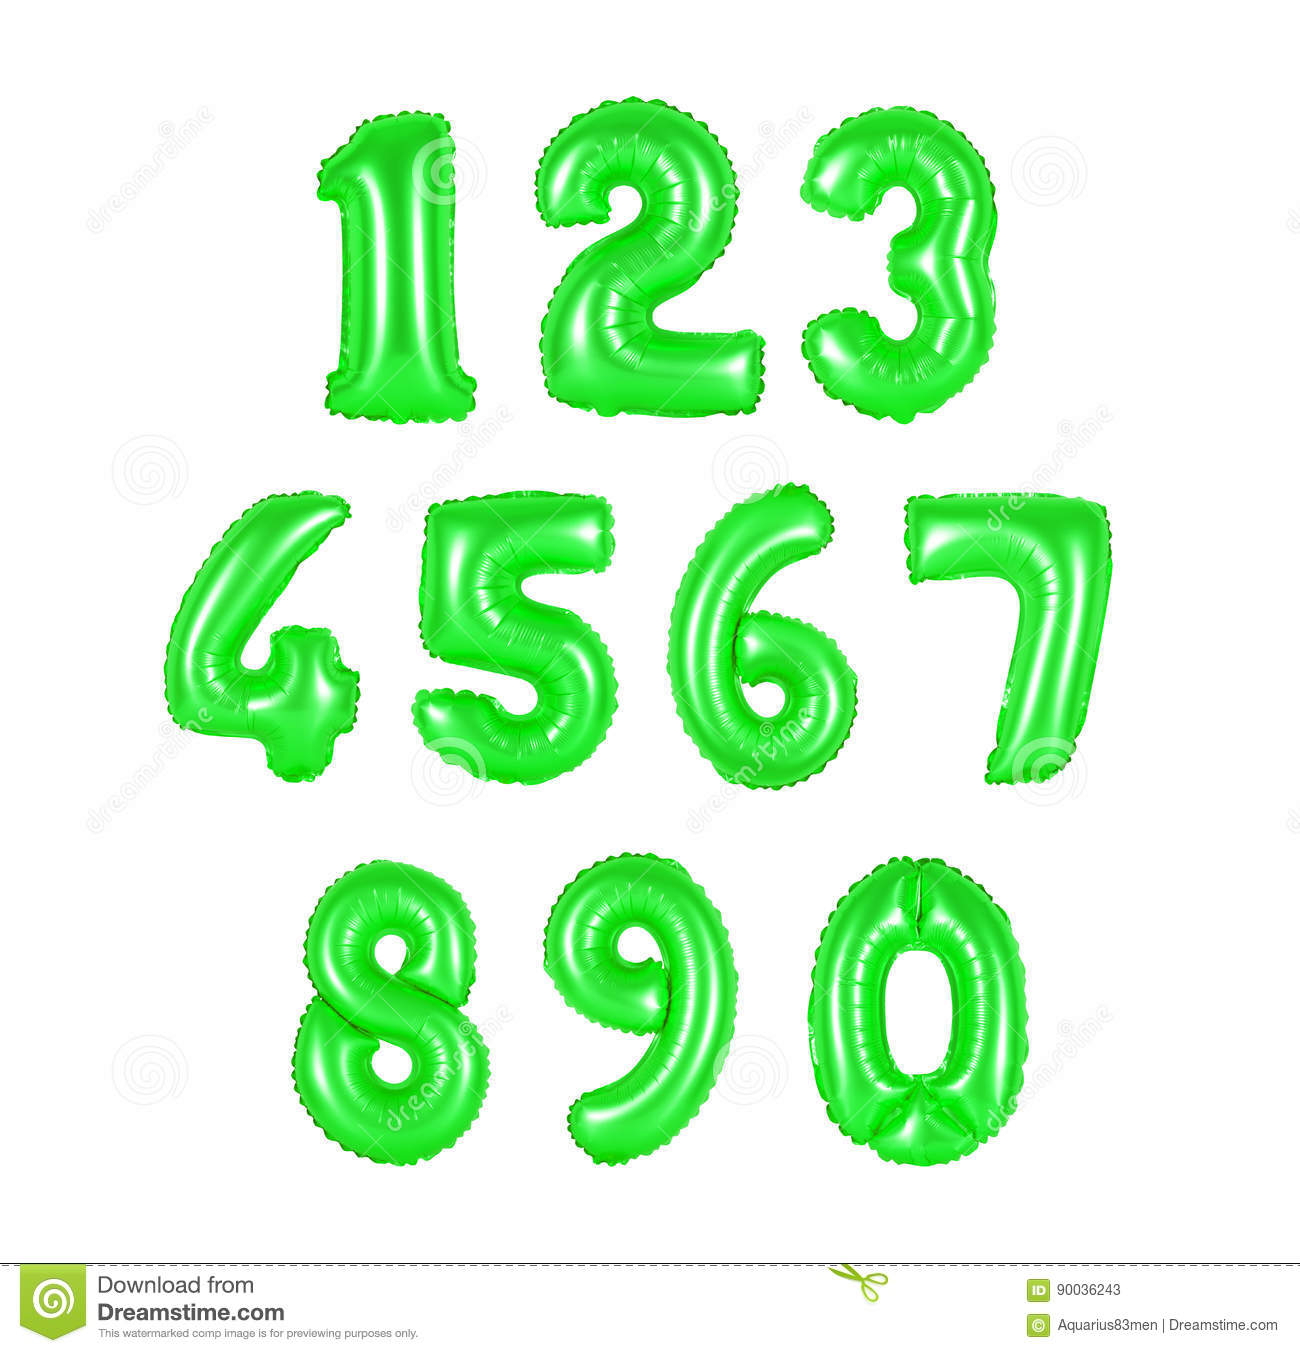 Number From Balloons Green Color Stock Image - Image: 90036243